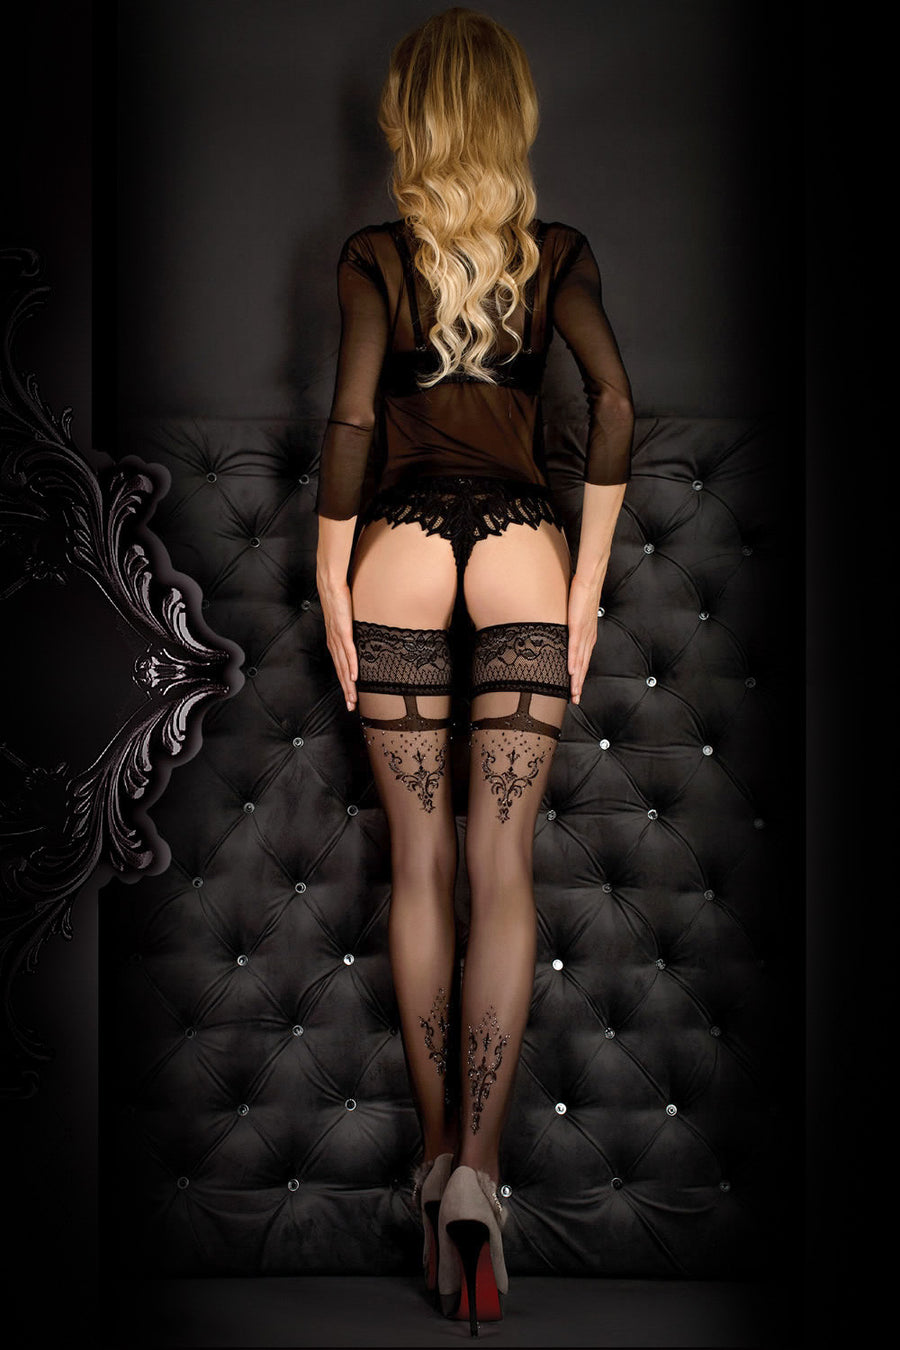 Ballerina Faux Suspender Floral Black Hold Ups - Mayfair Stockings